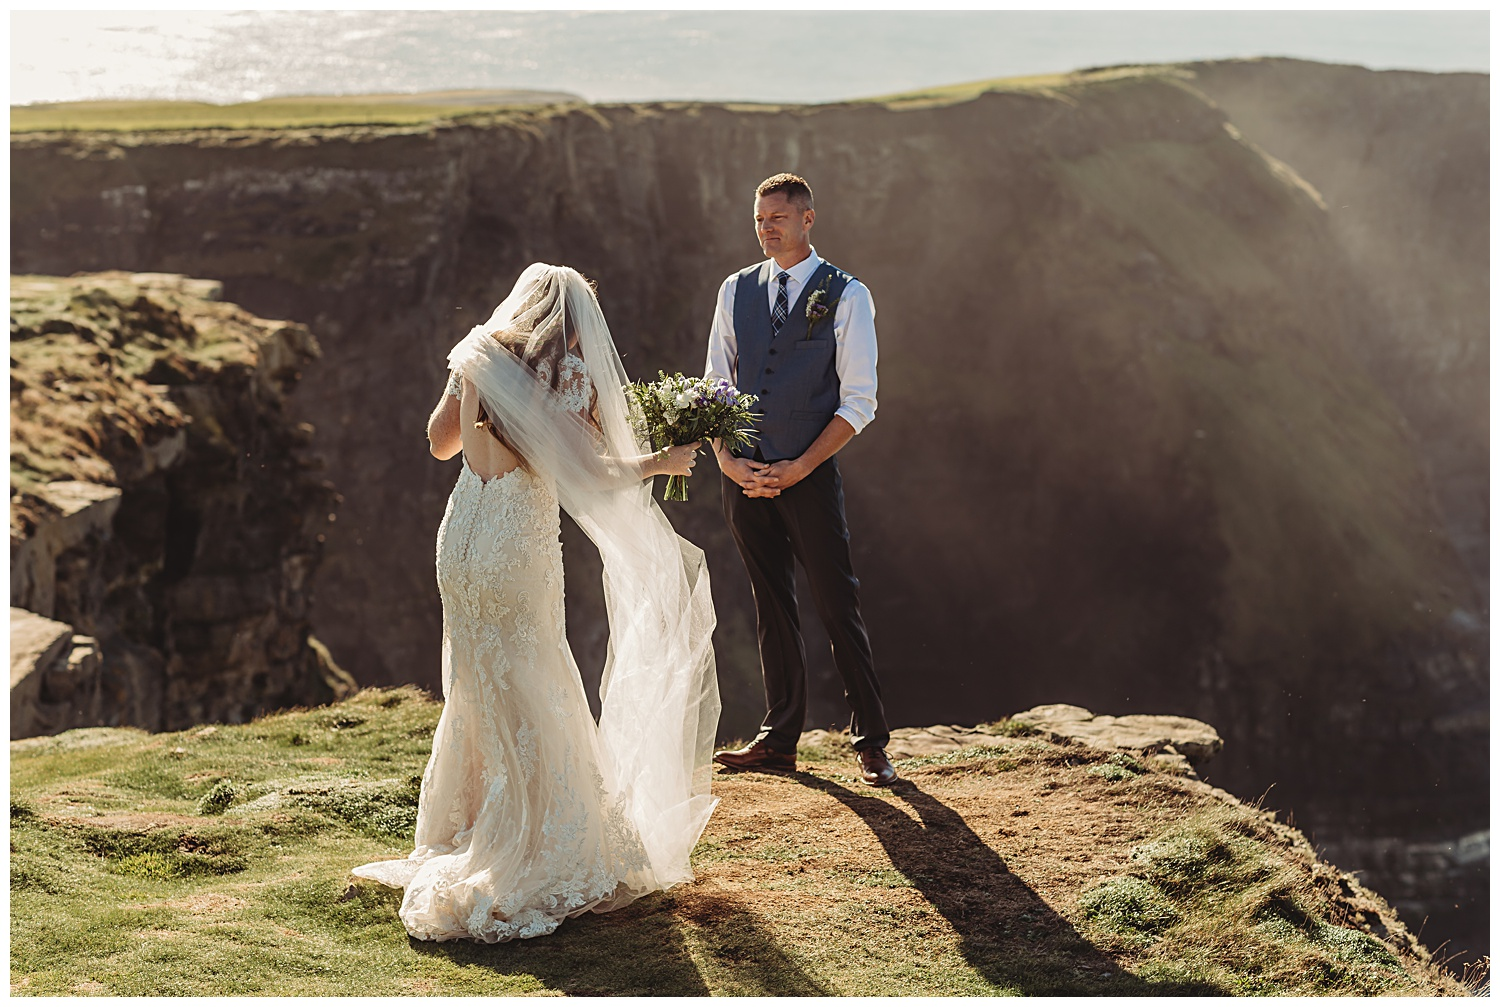 The Cliffs of Moher Destination Wedding Liscannor, County Clare, Ireland_1225.jpg